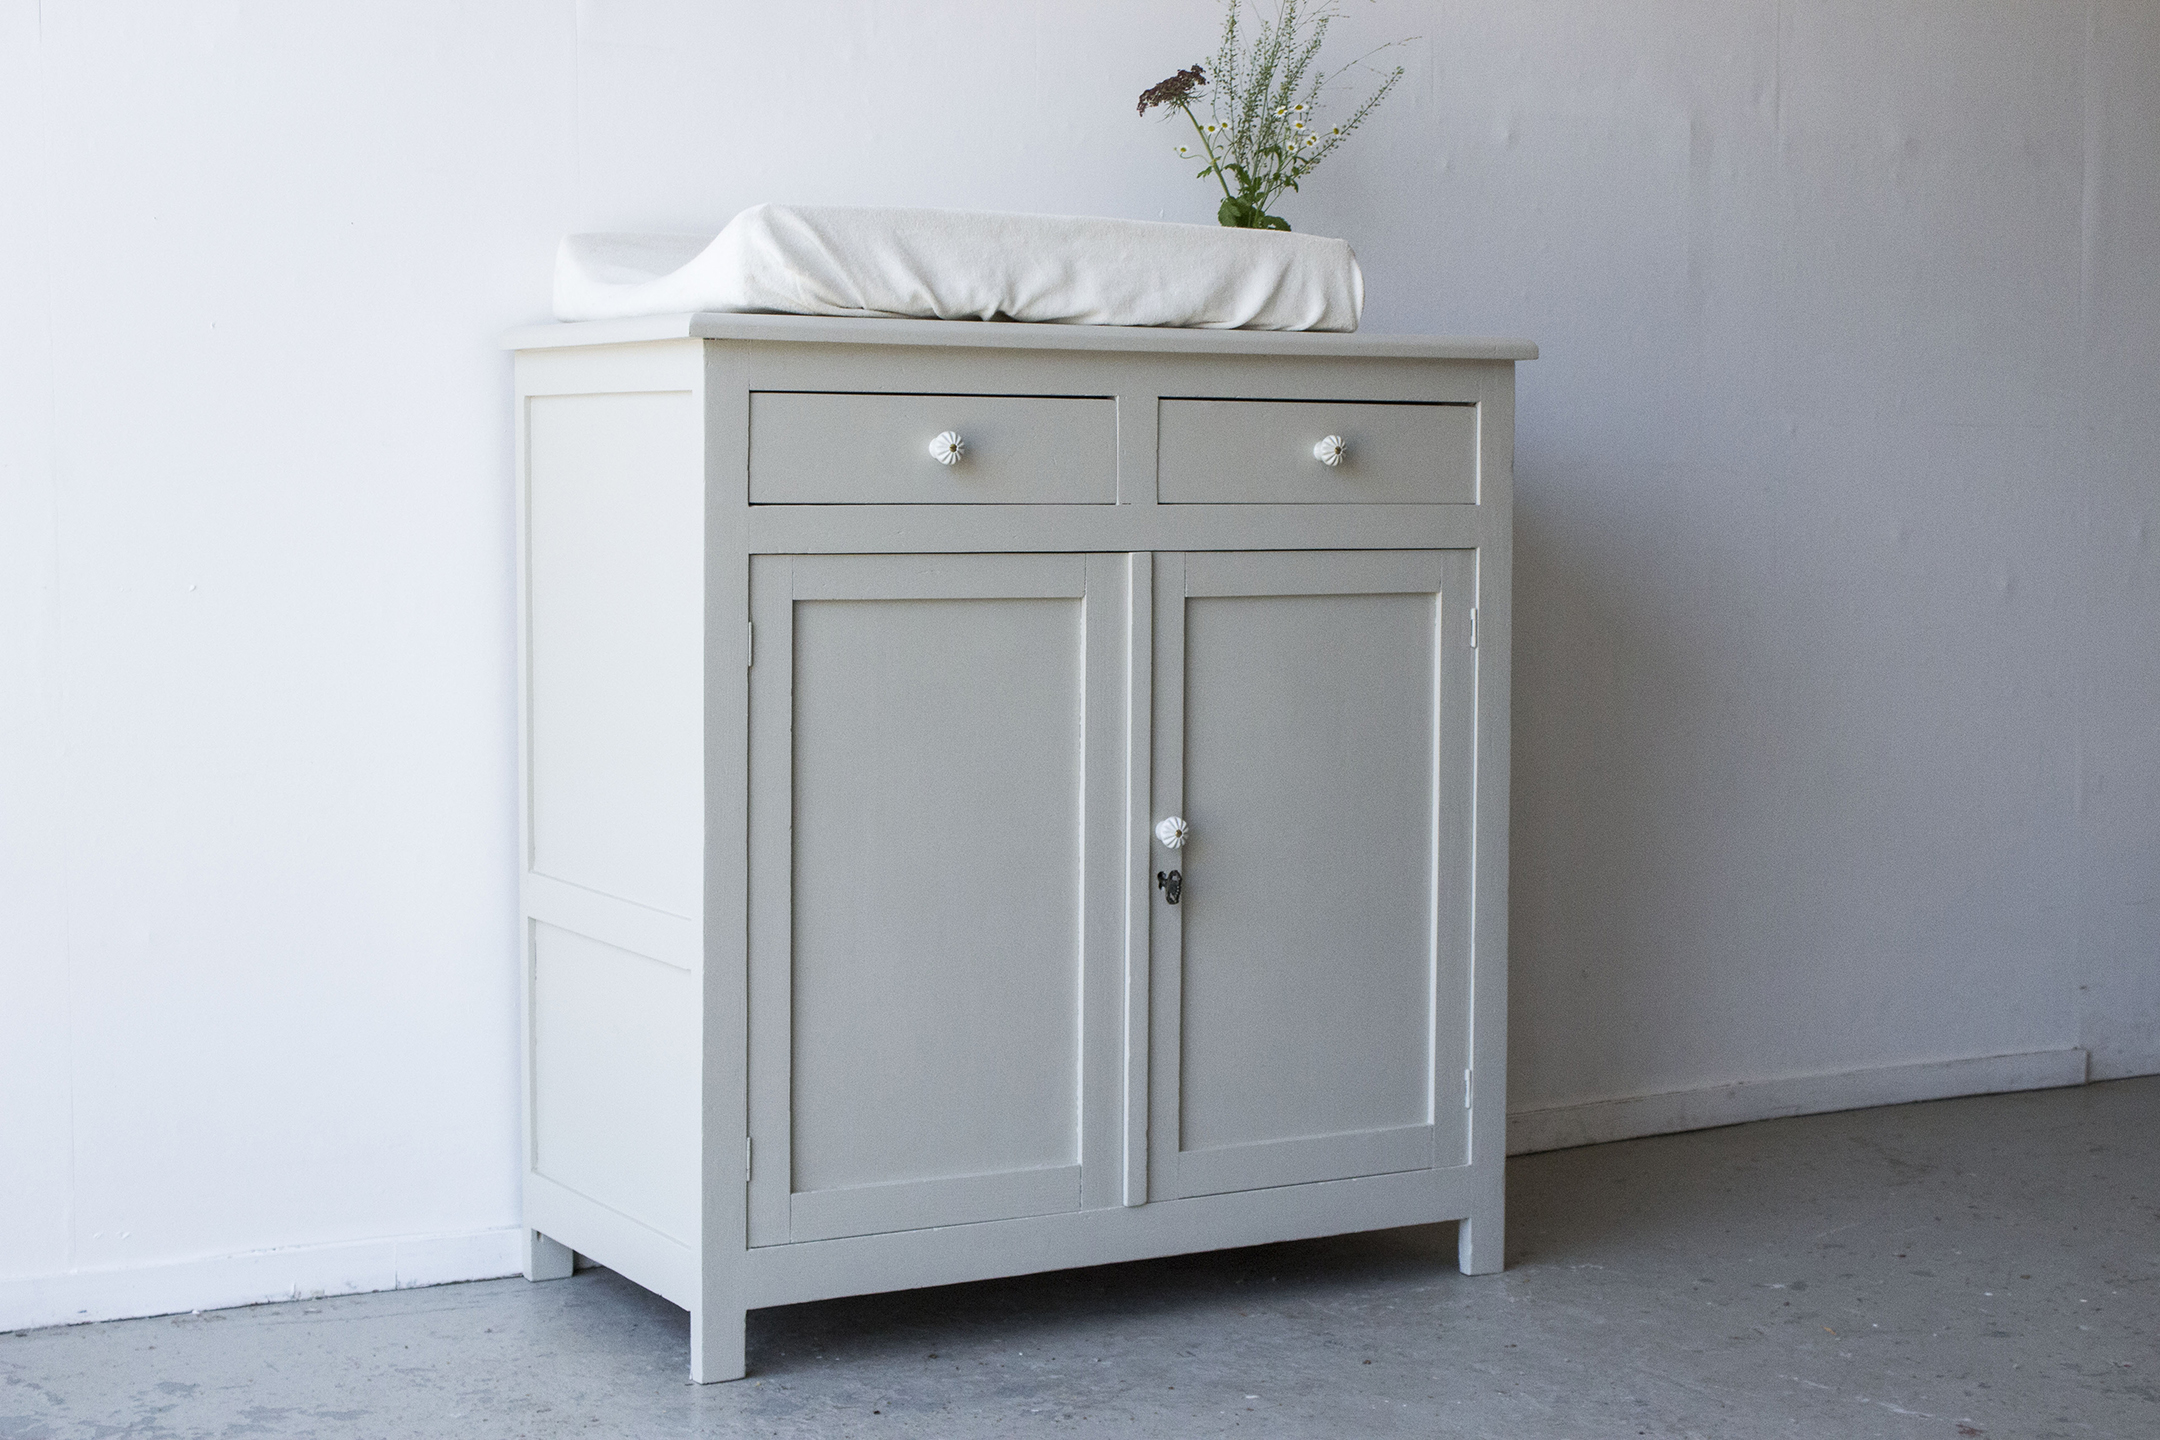 Linnen vintage commode -  Firma zoethout_3.jpg